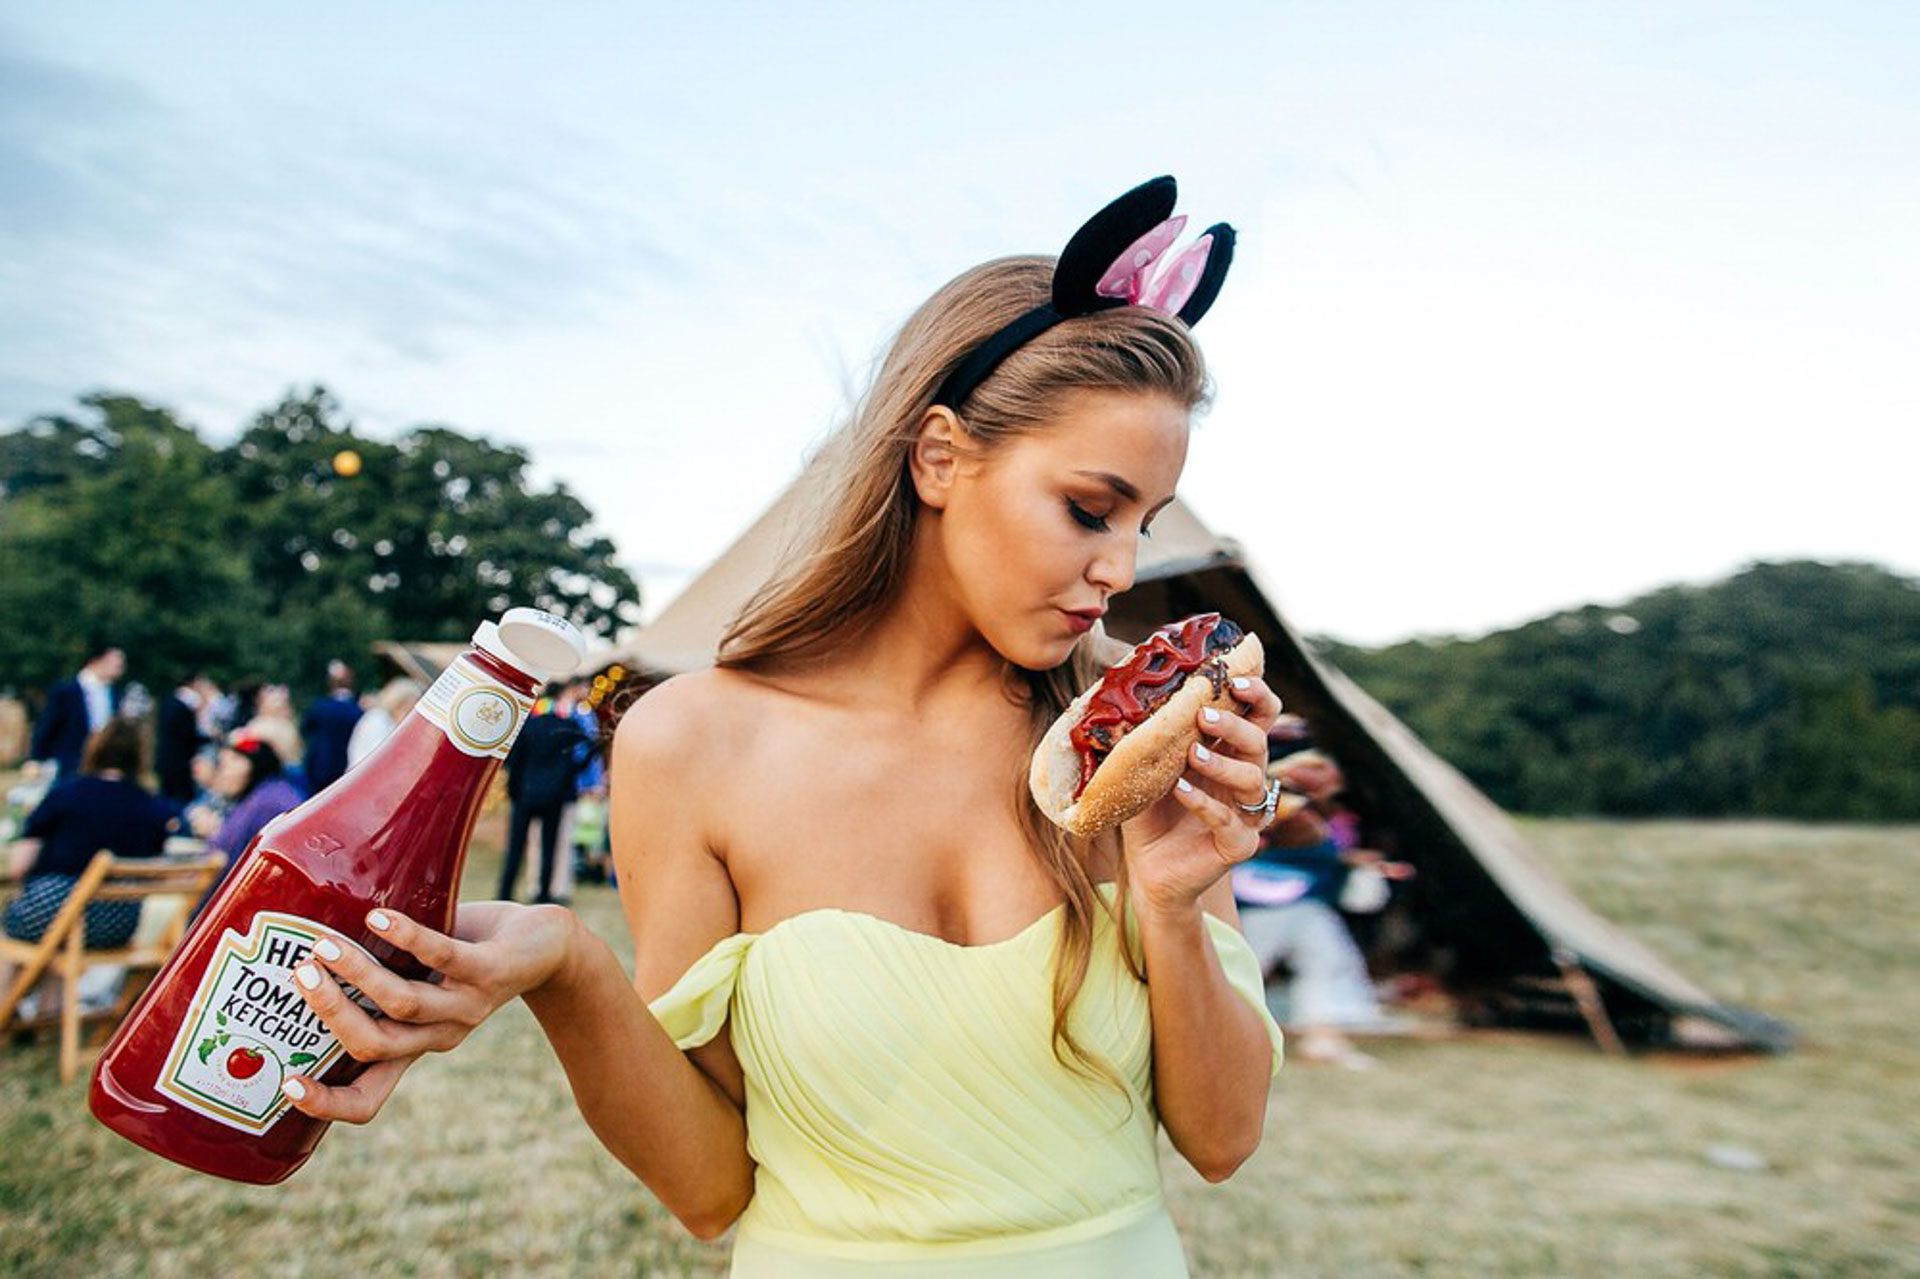 Image os bridesmaid holding a hotdog provocatively at a Tipi Wedding